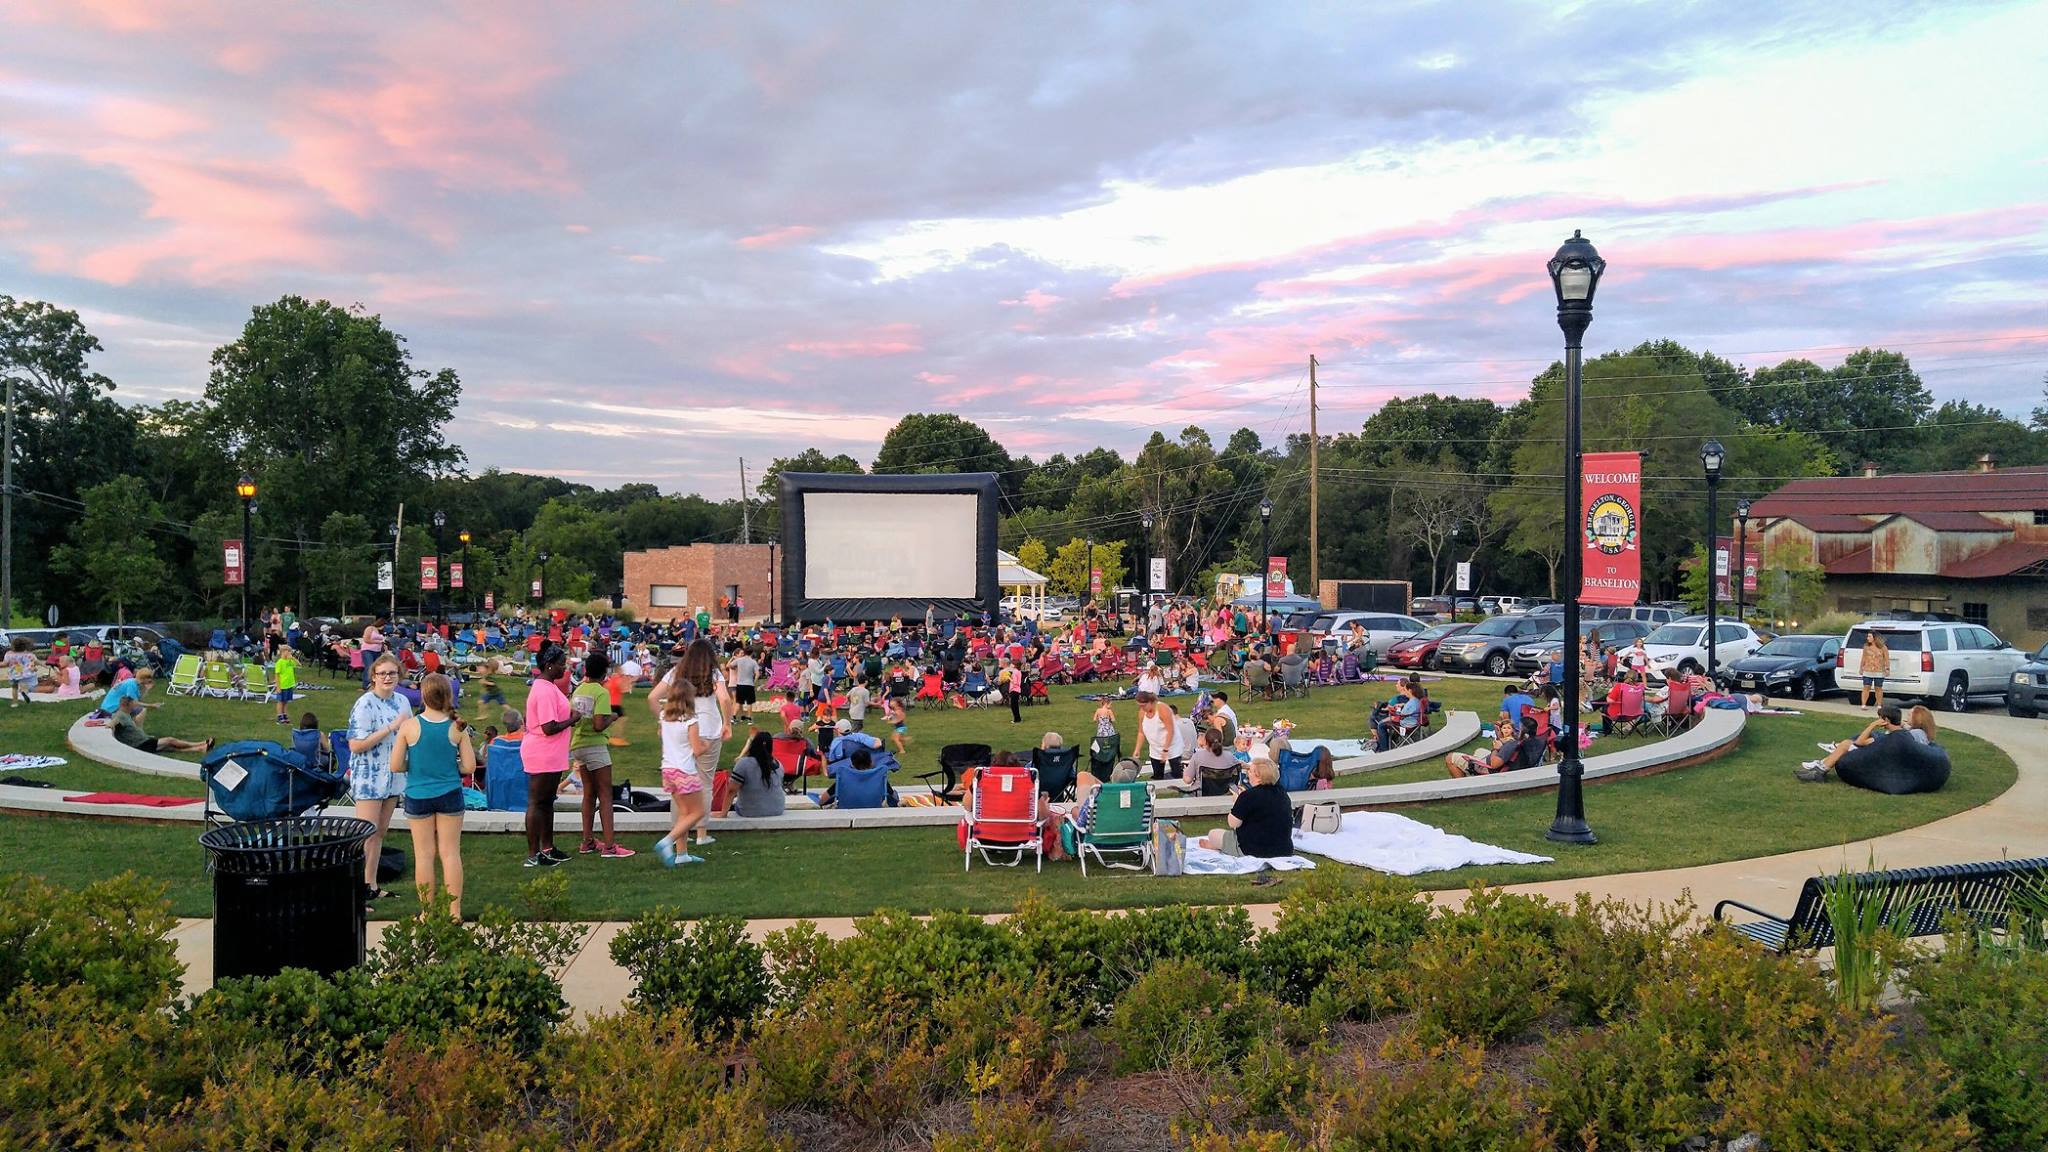 Movies Under the Stars in Braselton, Georgia